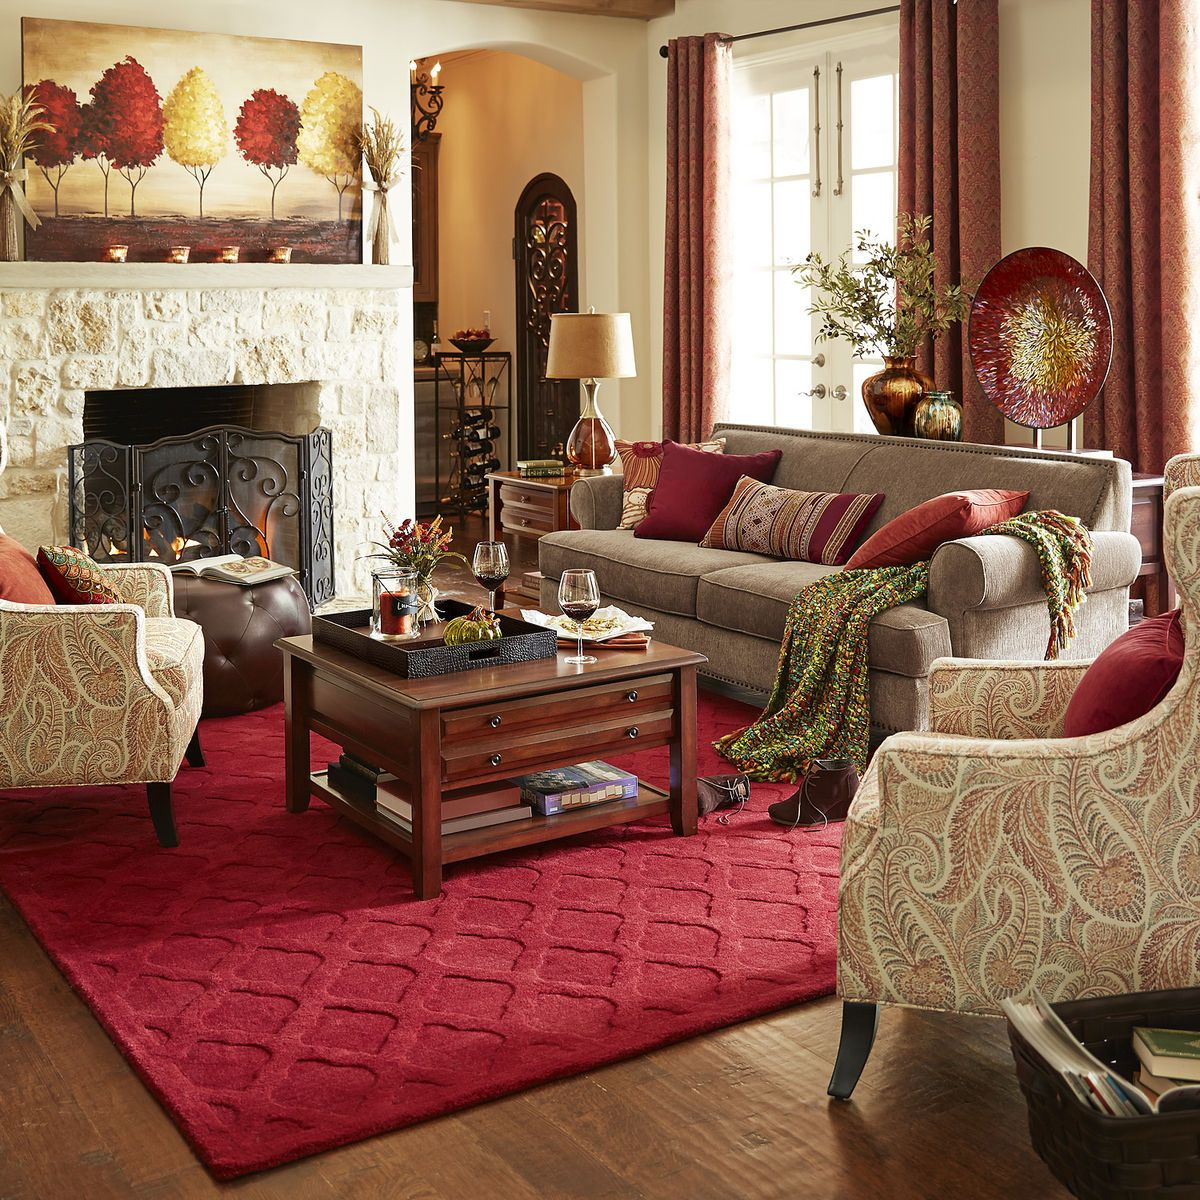 Sites-pier1_us-Site | Pier 1 Imports | Home | Living room ...